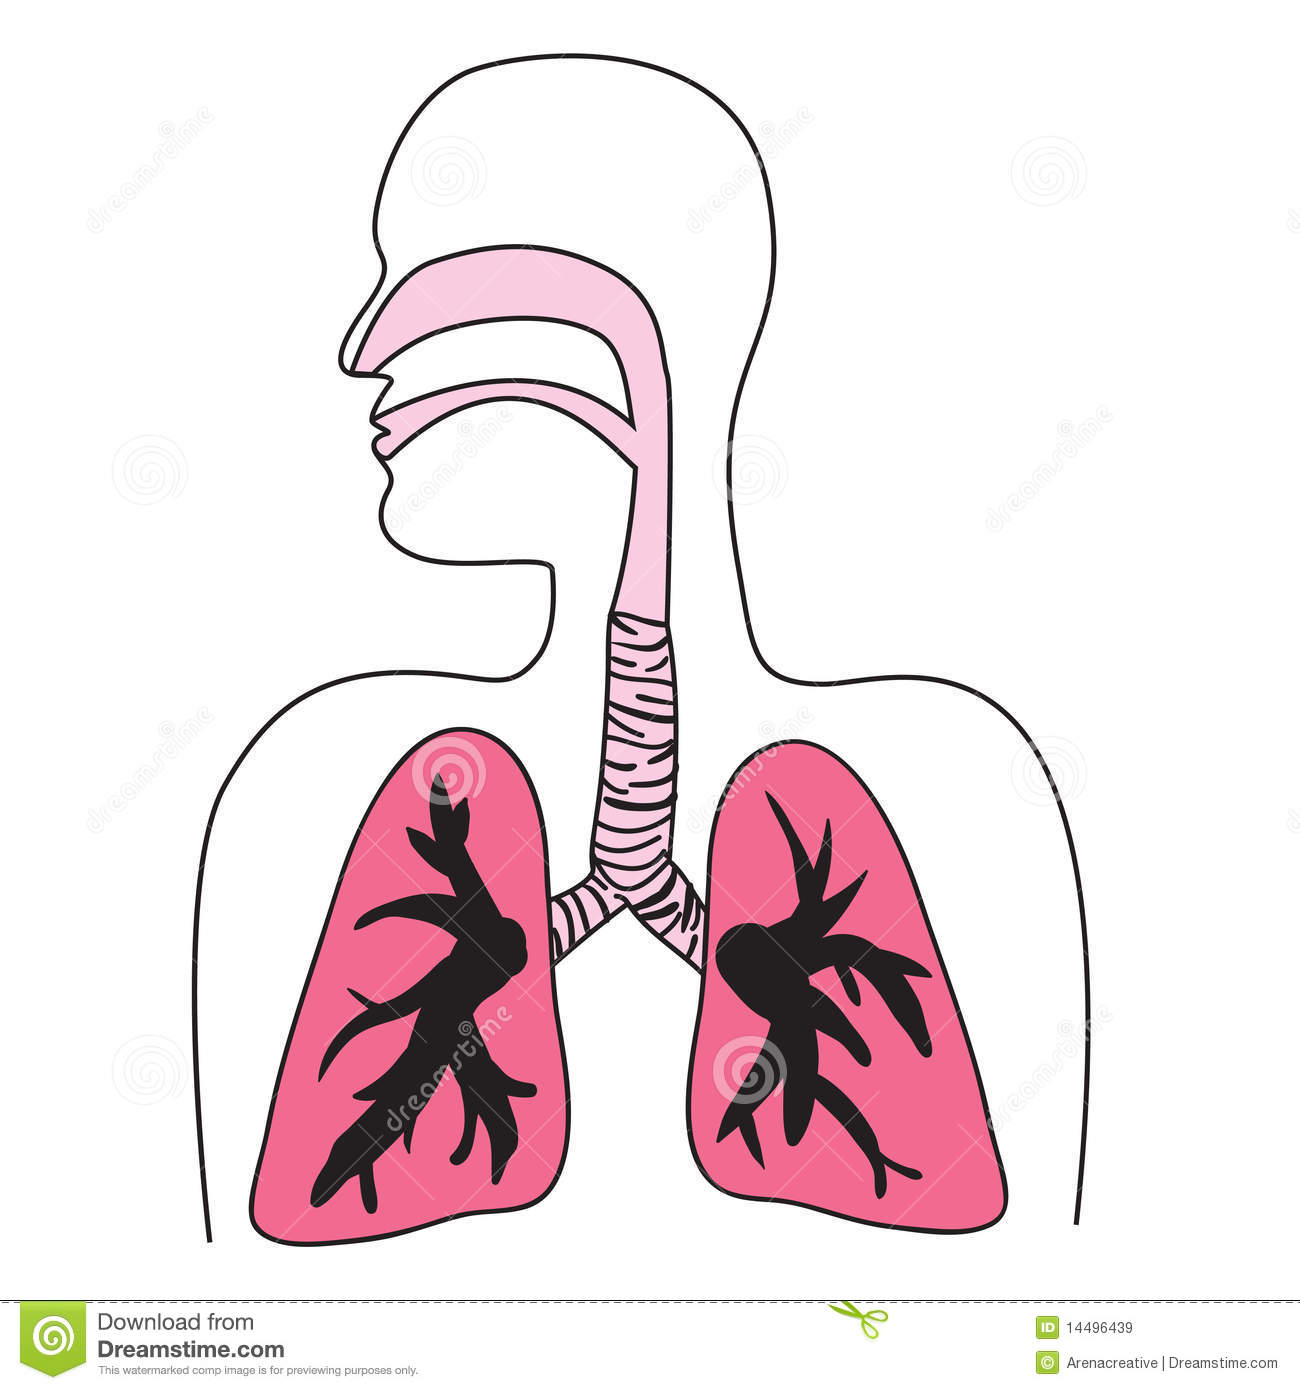 Human respiratory system diagram stock illustration illustration human respiratory system diagram ccuart Image collections